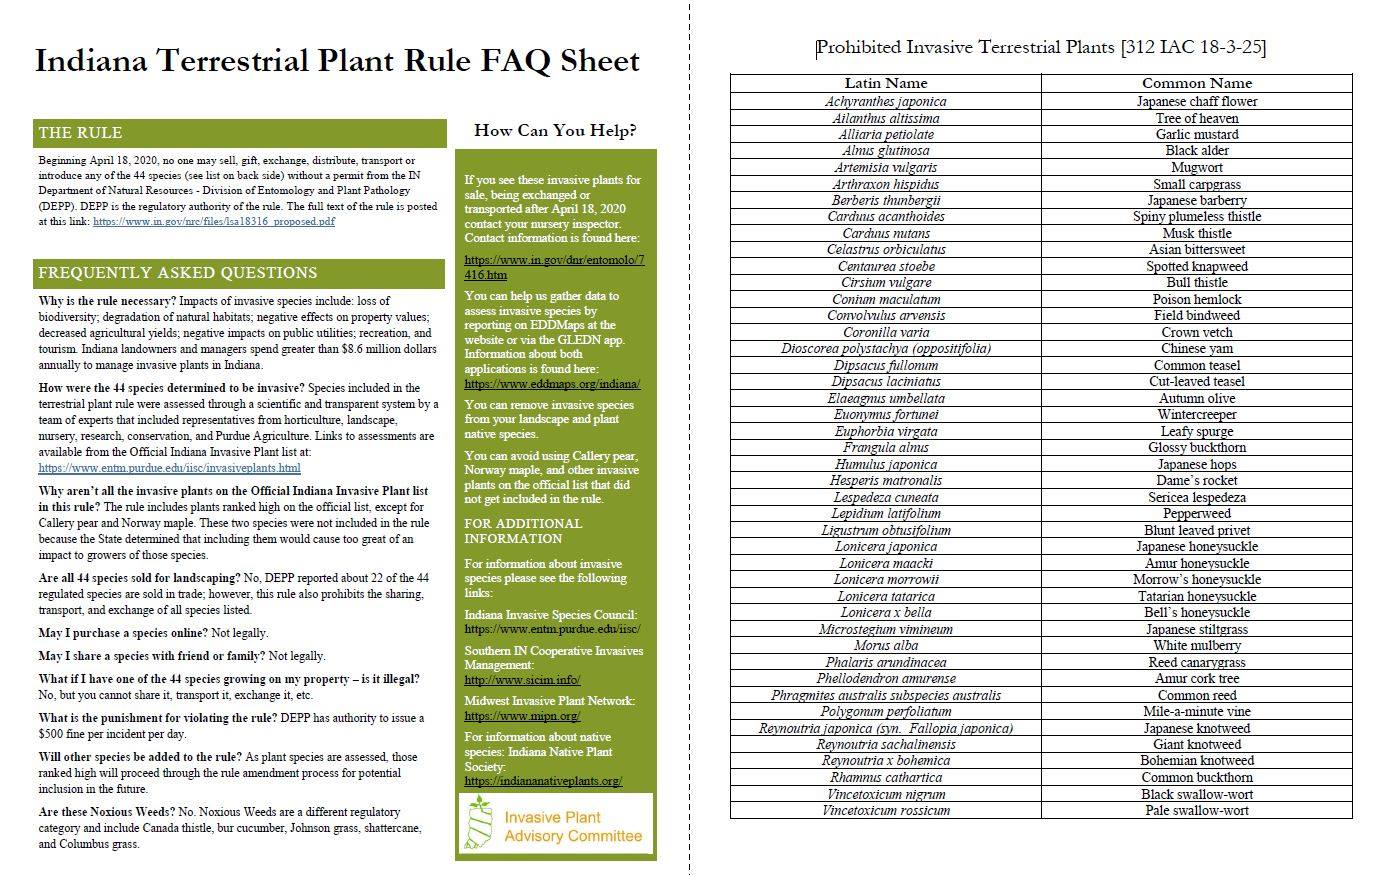 The IPAC Terrestrial Plant Rule Fact Sheet publication